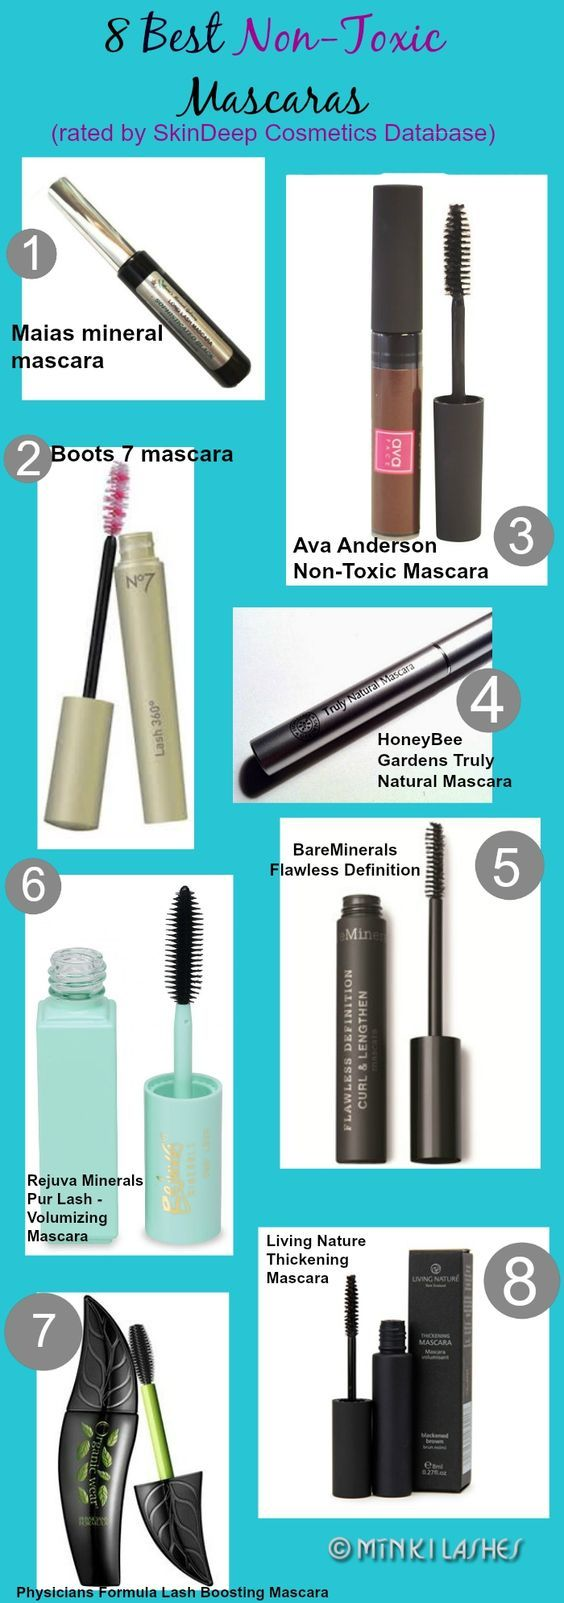 Best Cheap Mascara For Short Lashes 10 Risky Options To